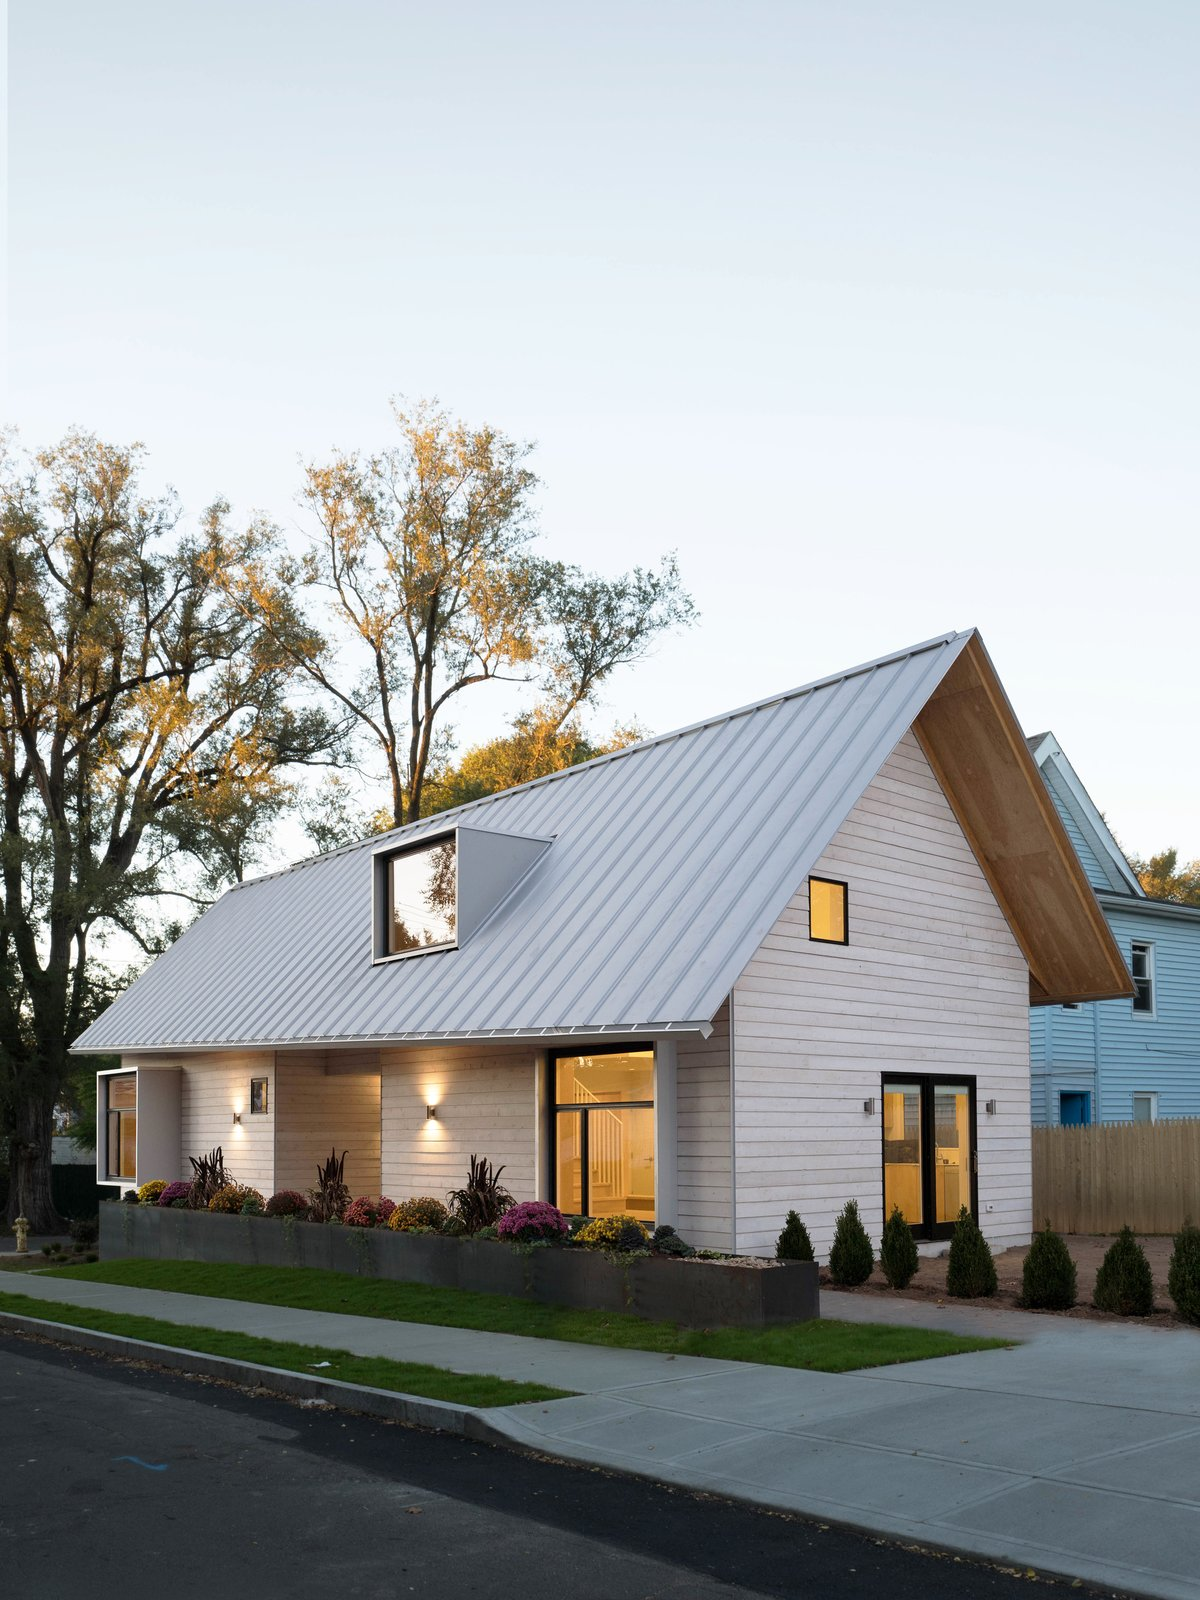 Exterior, Metal Roof Material, Shed RoofLine, House Building Type, And Wood  Siding